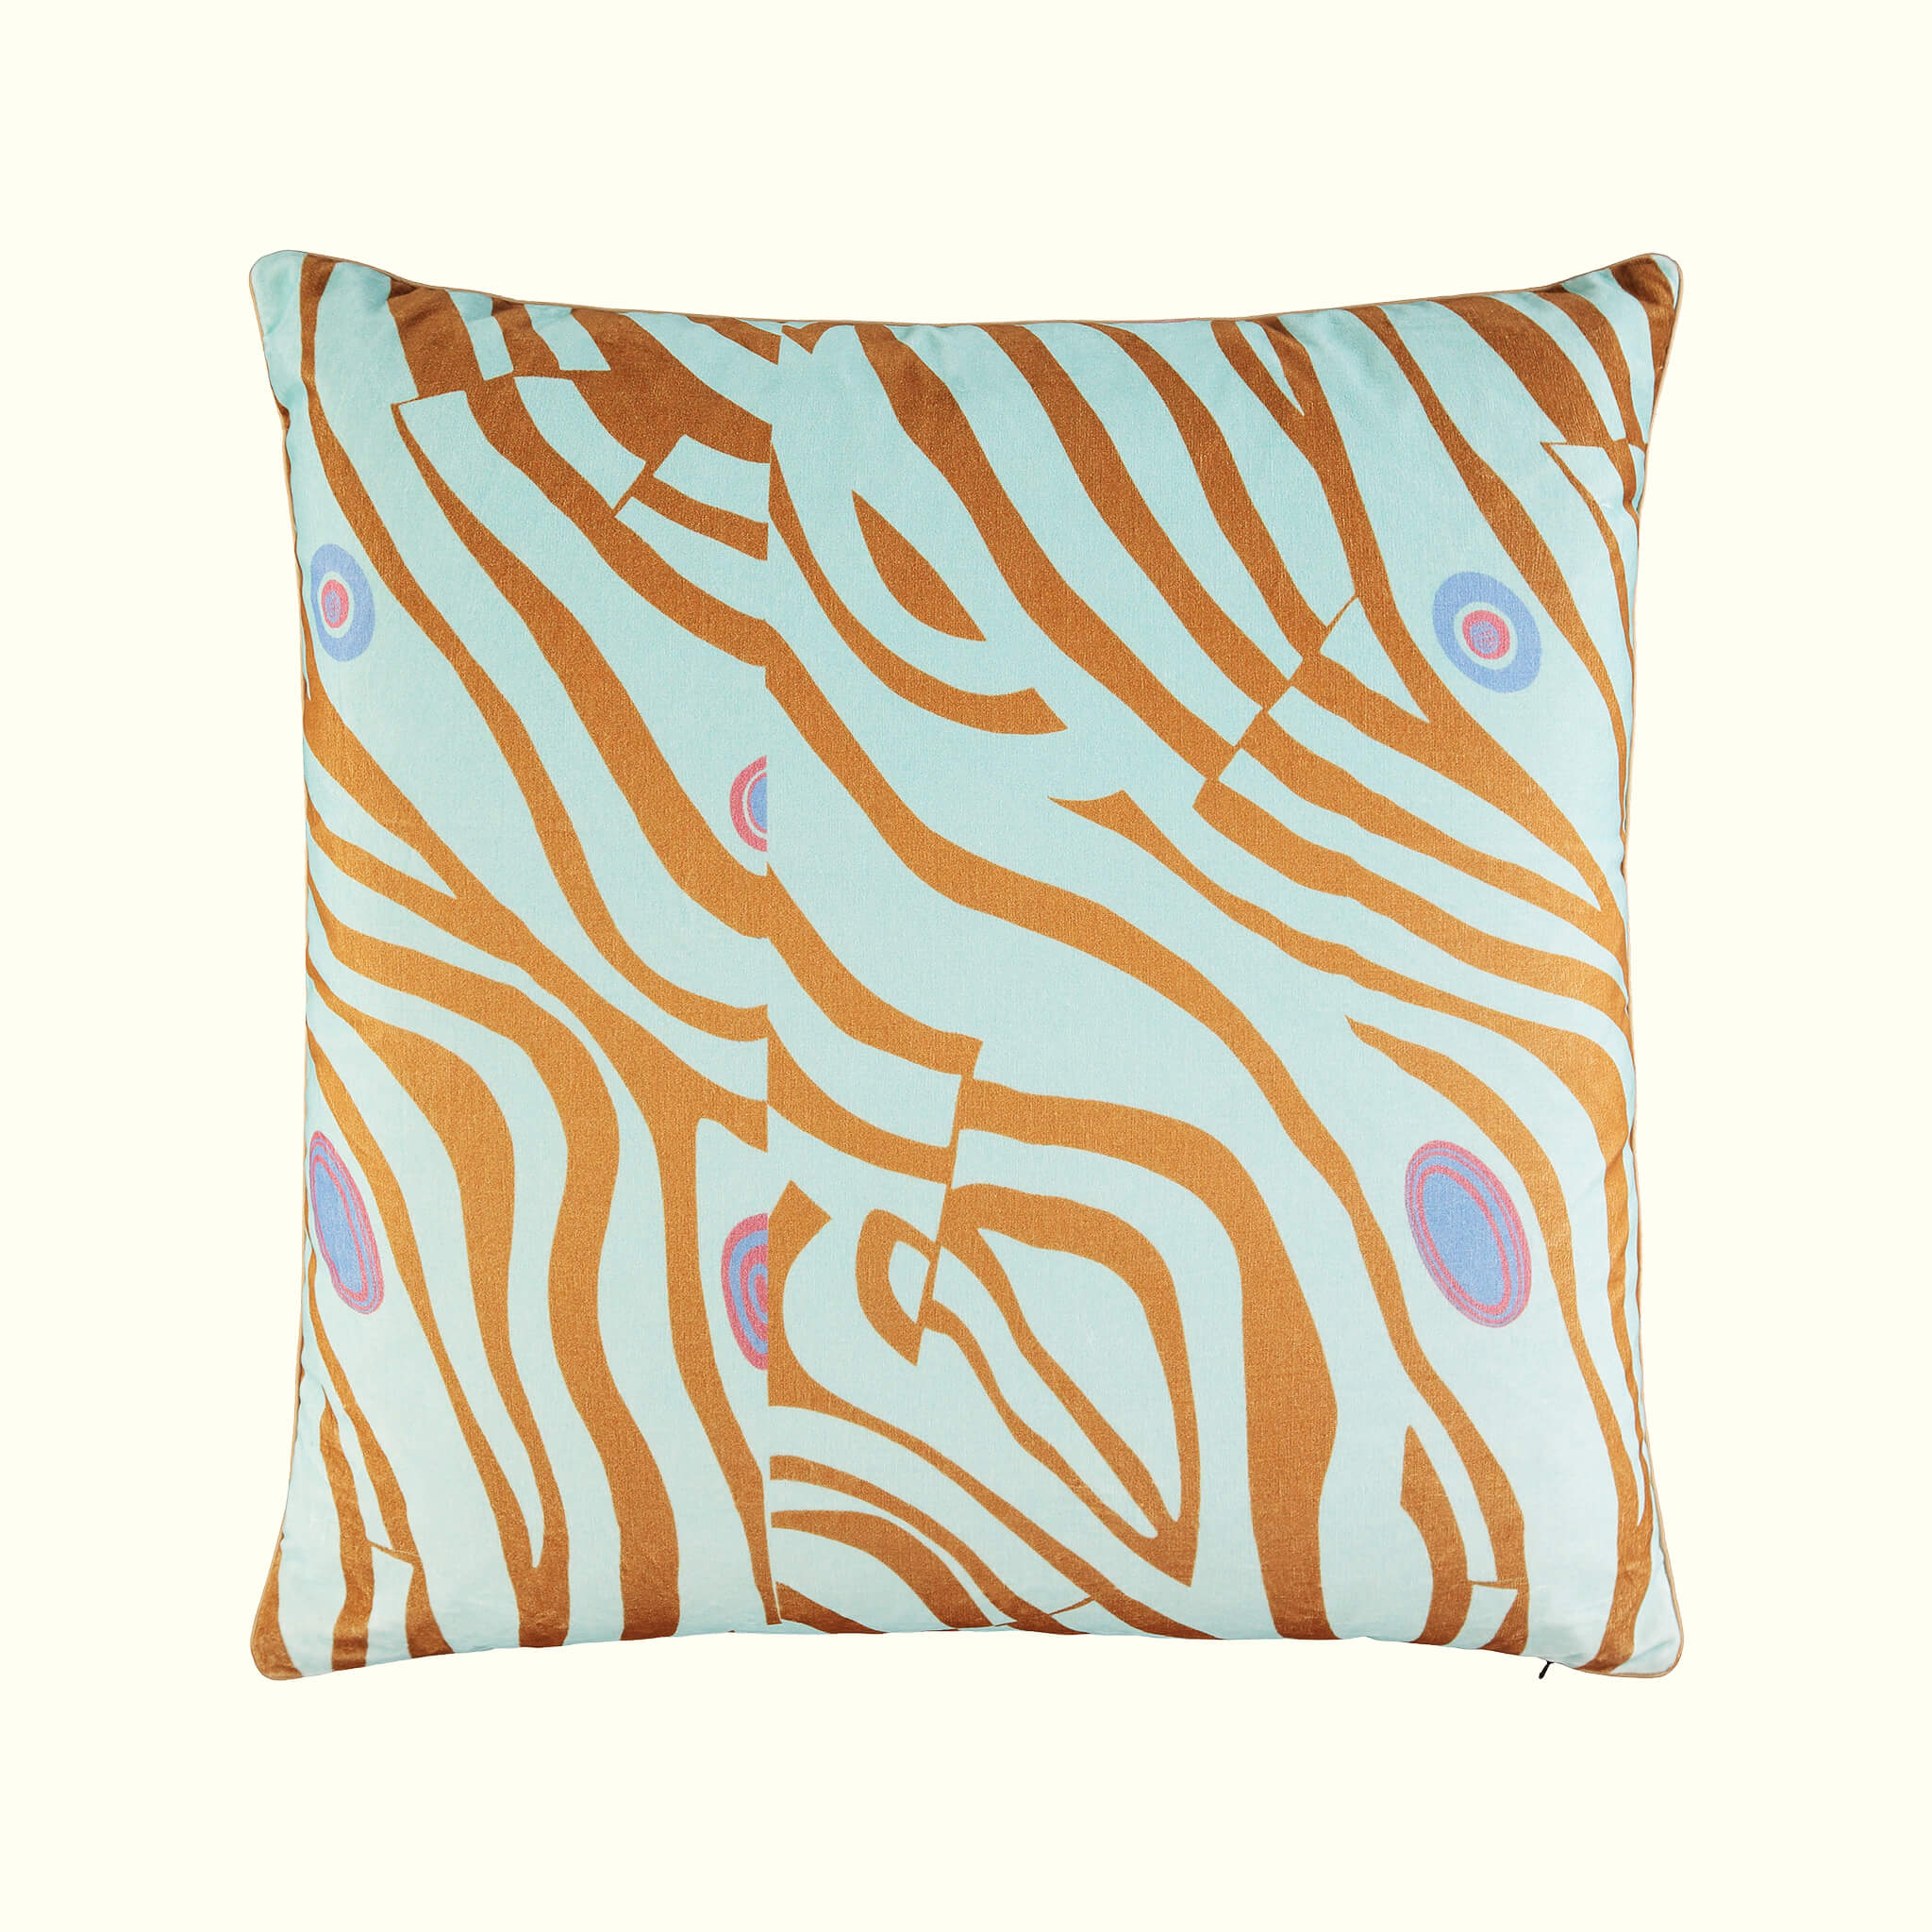 A luxury British cotton velvet cushion by GVE in ice Dune print design.